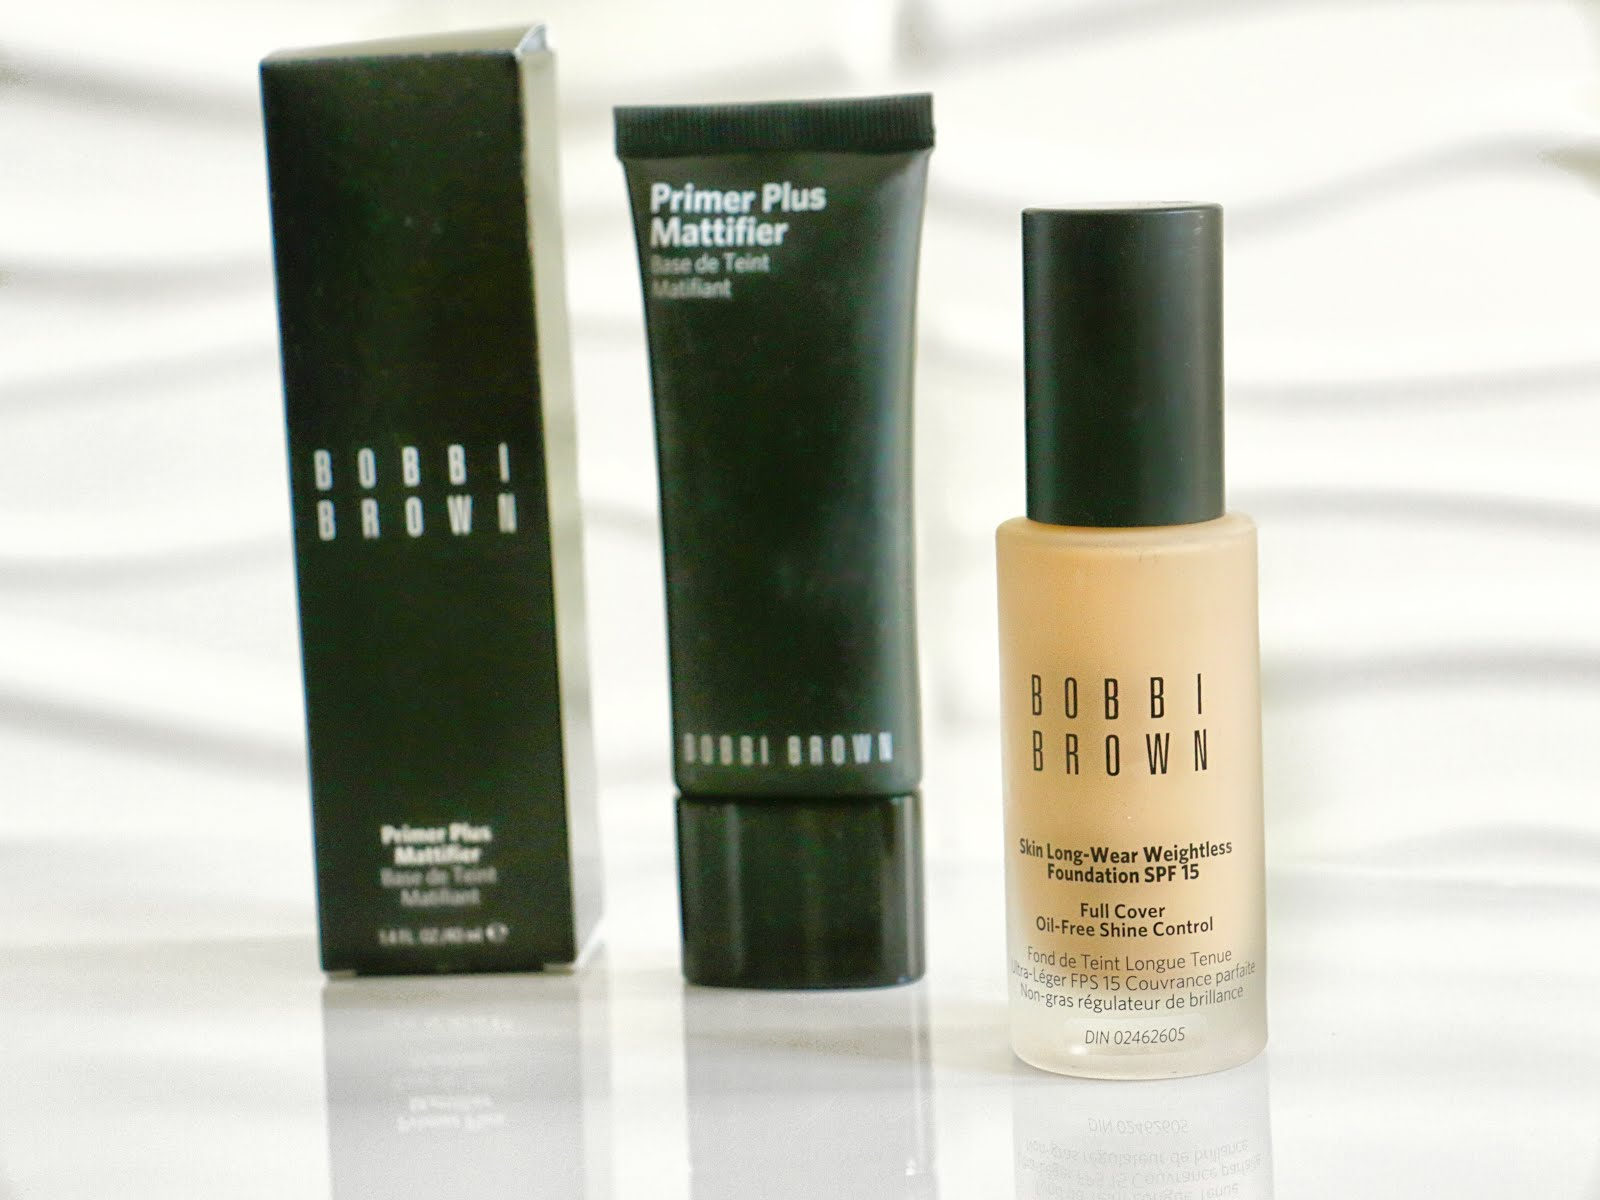 Bobbi-Brown-Long-Wear-Weightless-Foundation-and-Primer-Plus-Mattifier-Vivi-Brizuela